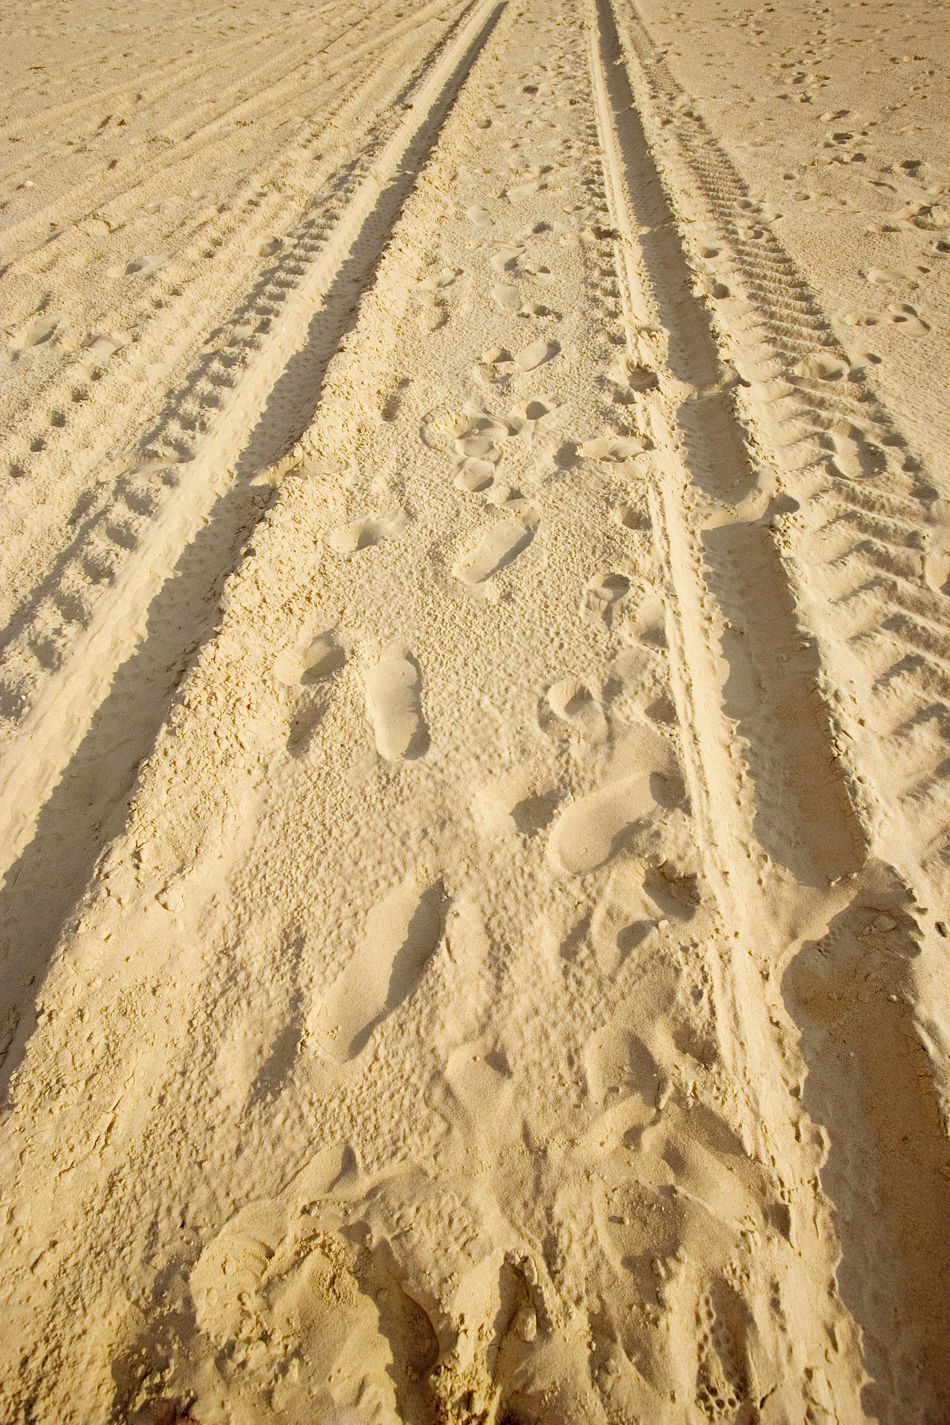 tracks on a sandy beach - in warm sunlight 4x4 Arid Climate Backgrounds Beach Car Car Tracks Desert Diminishing Perspective FootPrint Footprints Full Frame Land Vehicle Nature No People Offroad Sand Sandy Sunlight SUV Tire Traces Track Tracks Transportation Vehicle